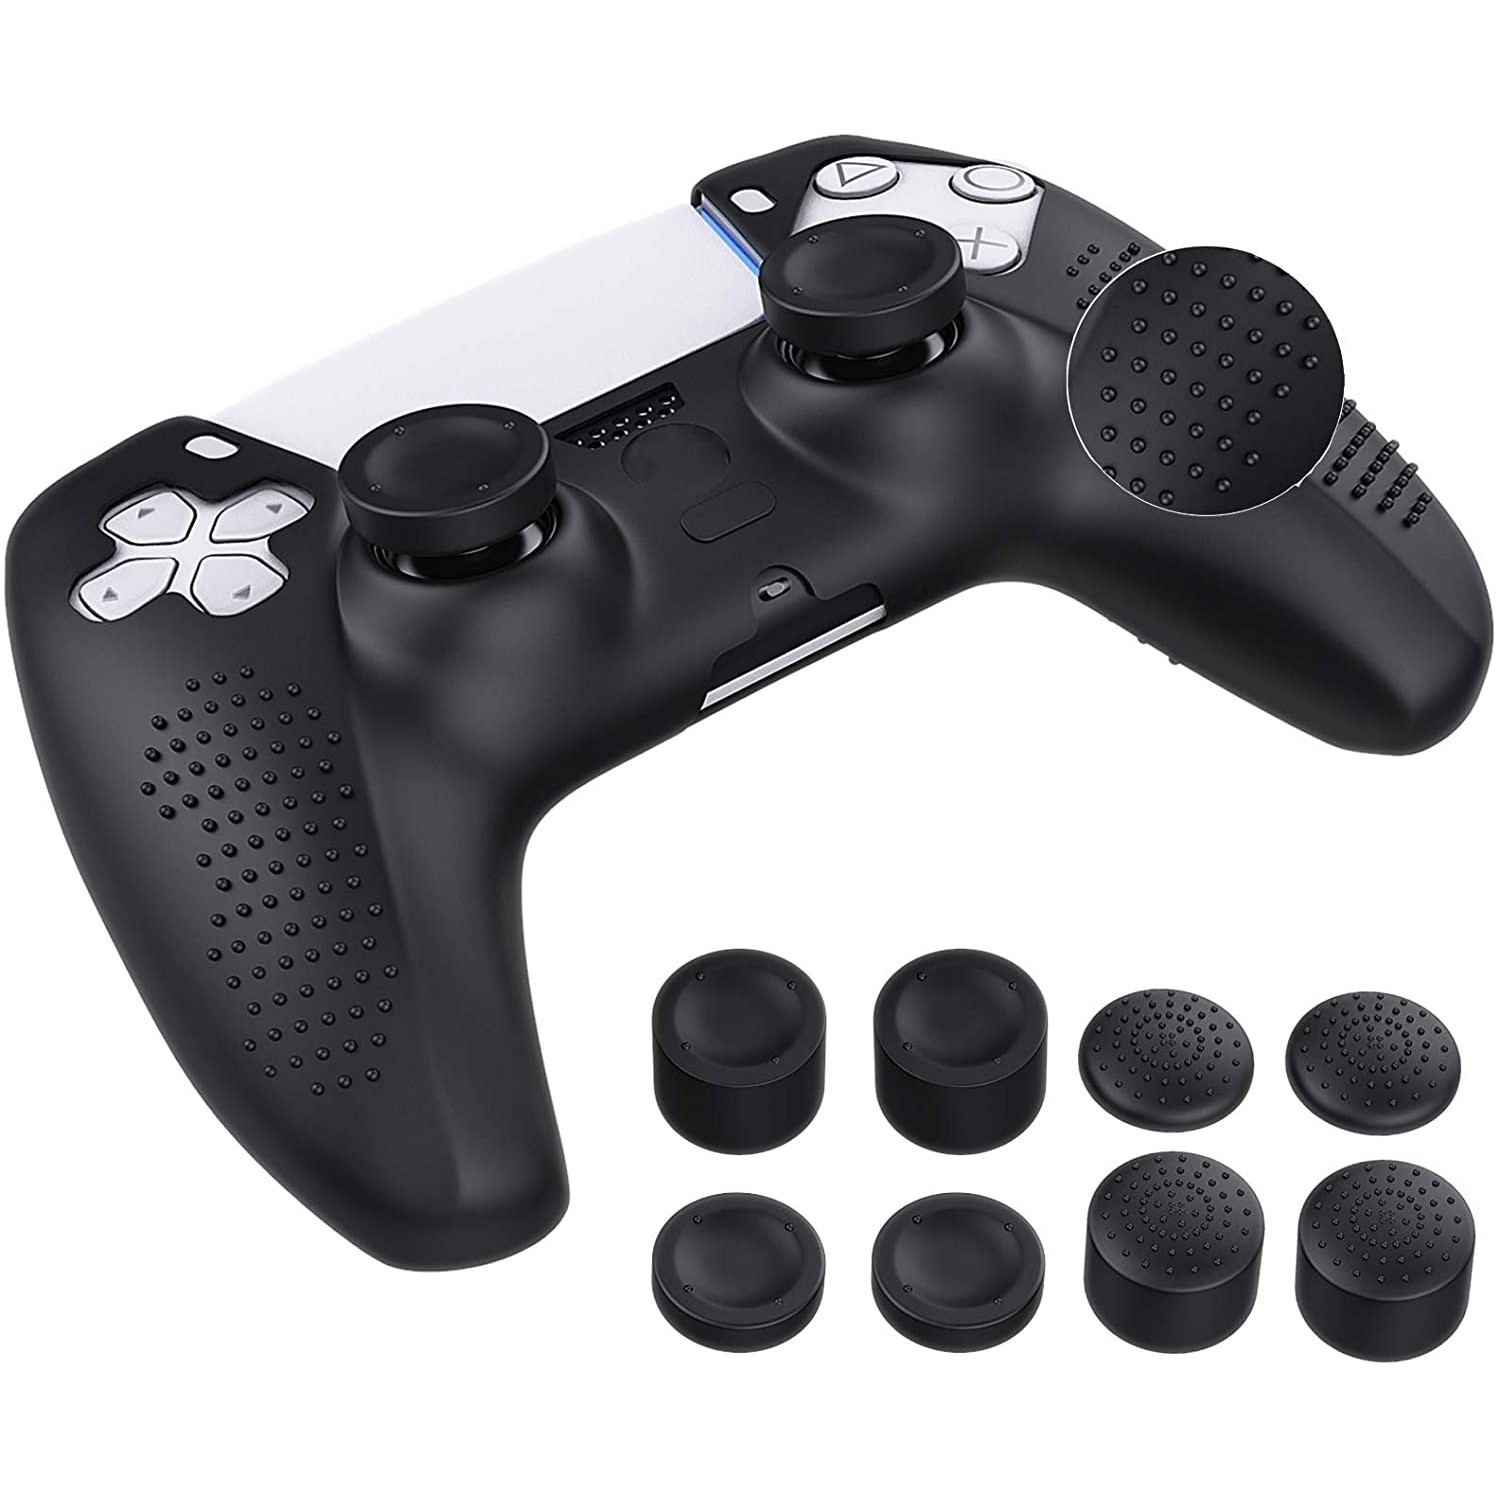 Case - Silicon skin for Playstation PS5 controller - Black